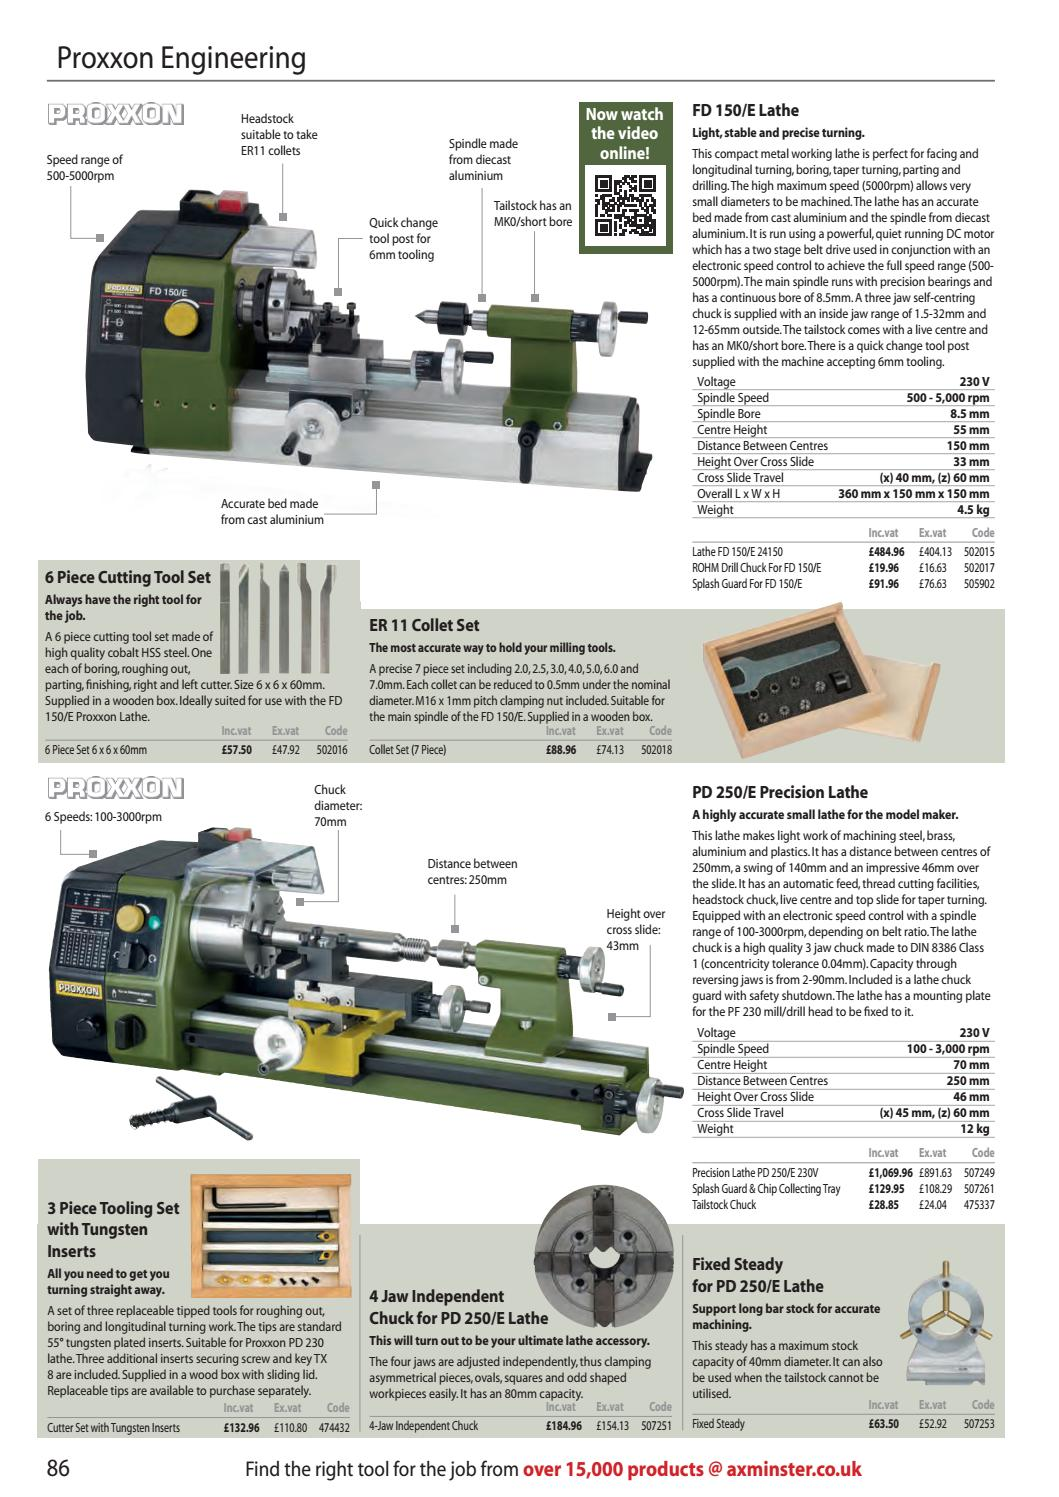 Axminster Tools & Machinery Catalogue 2018/19 by Axminster